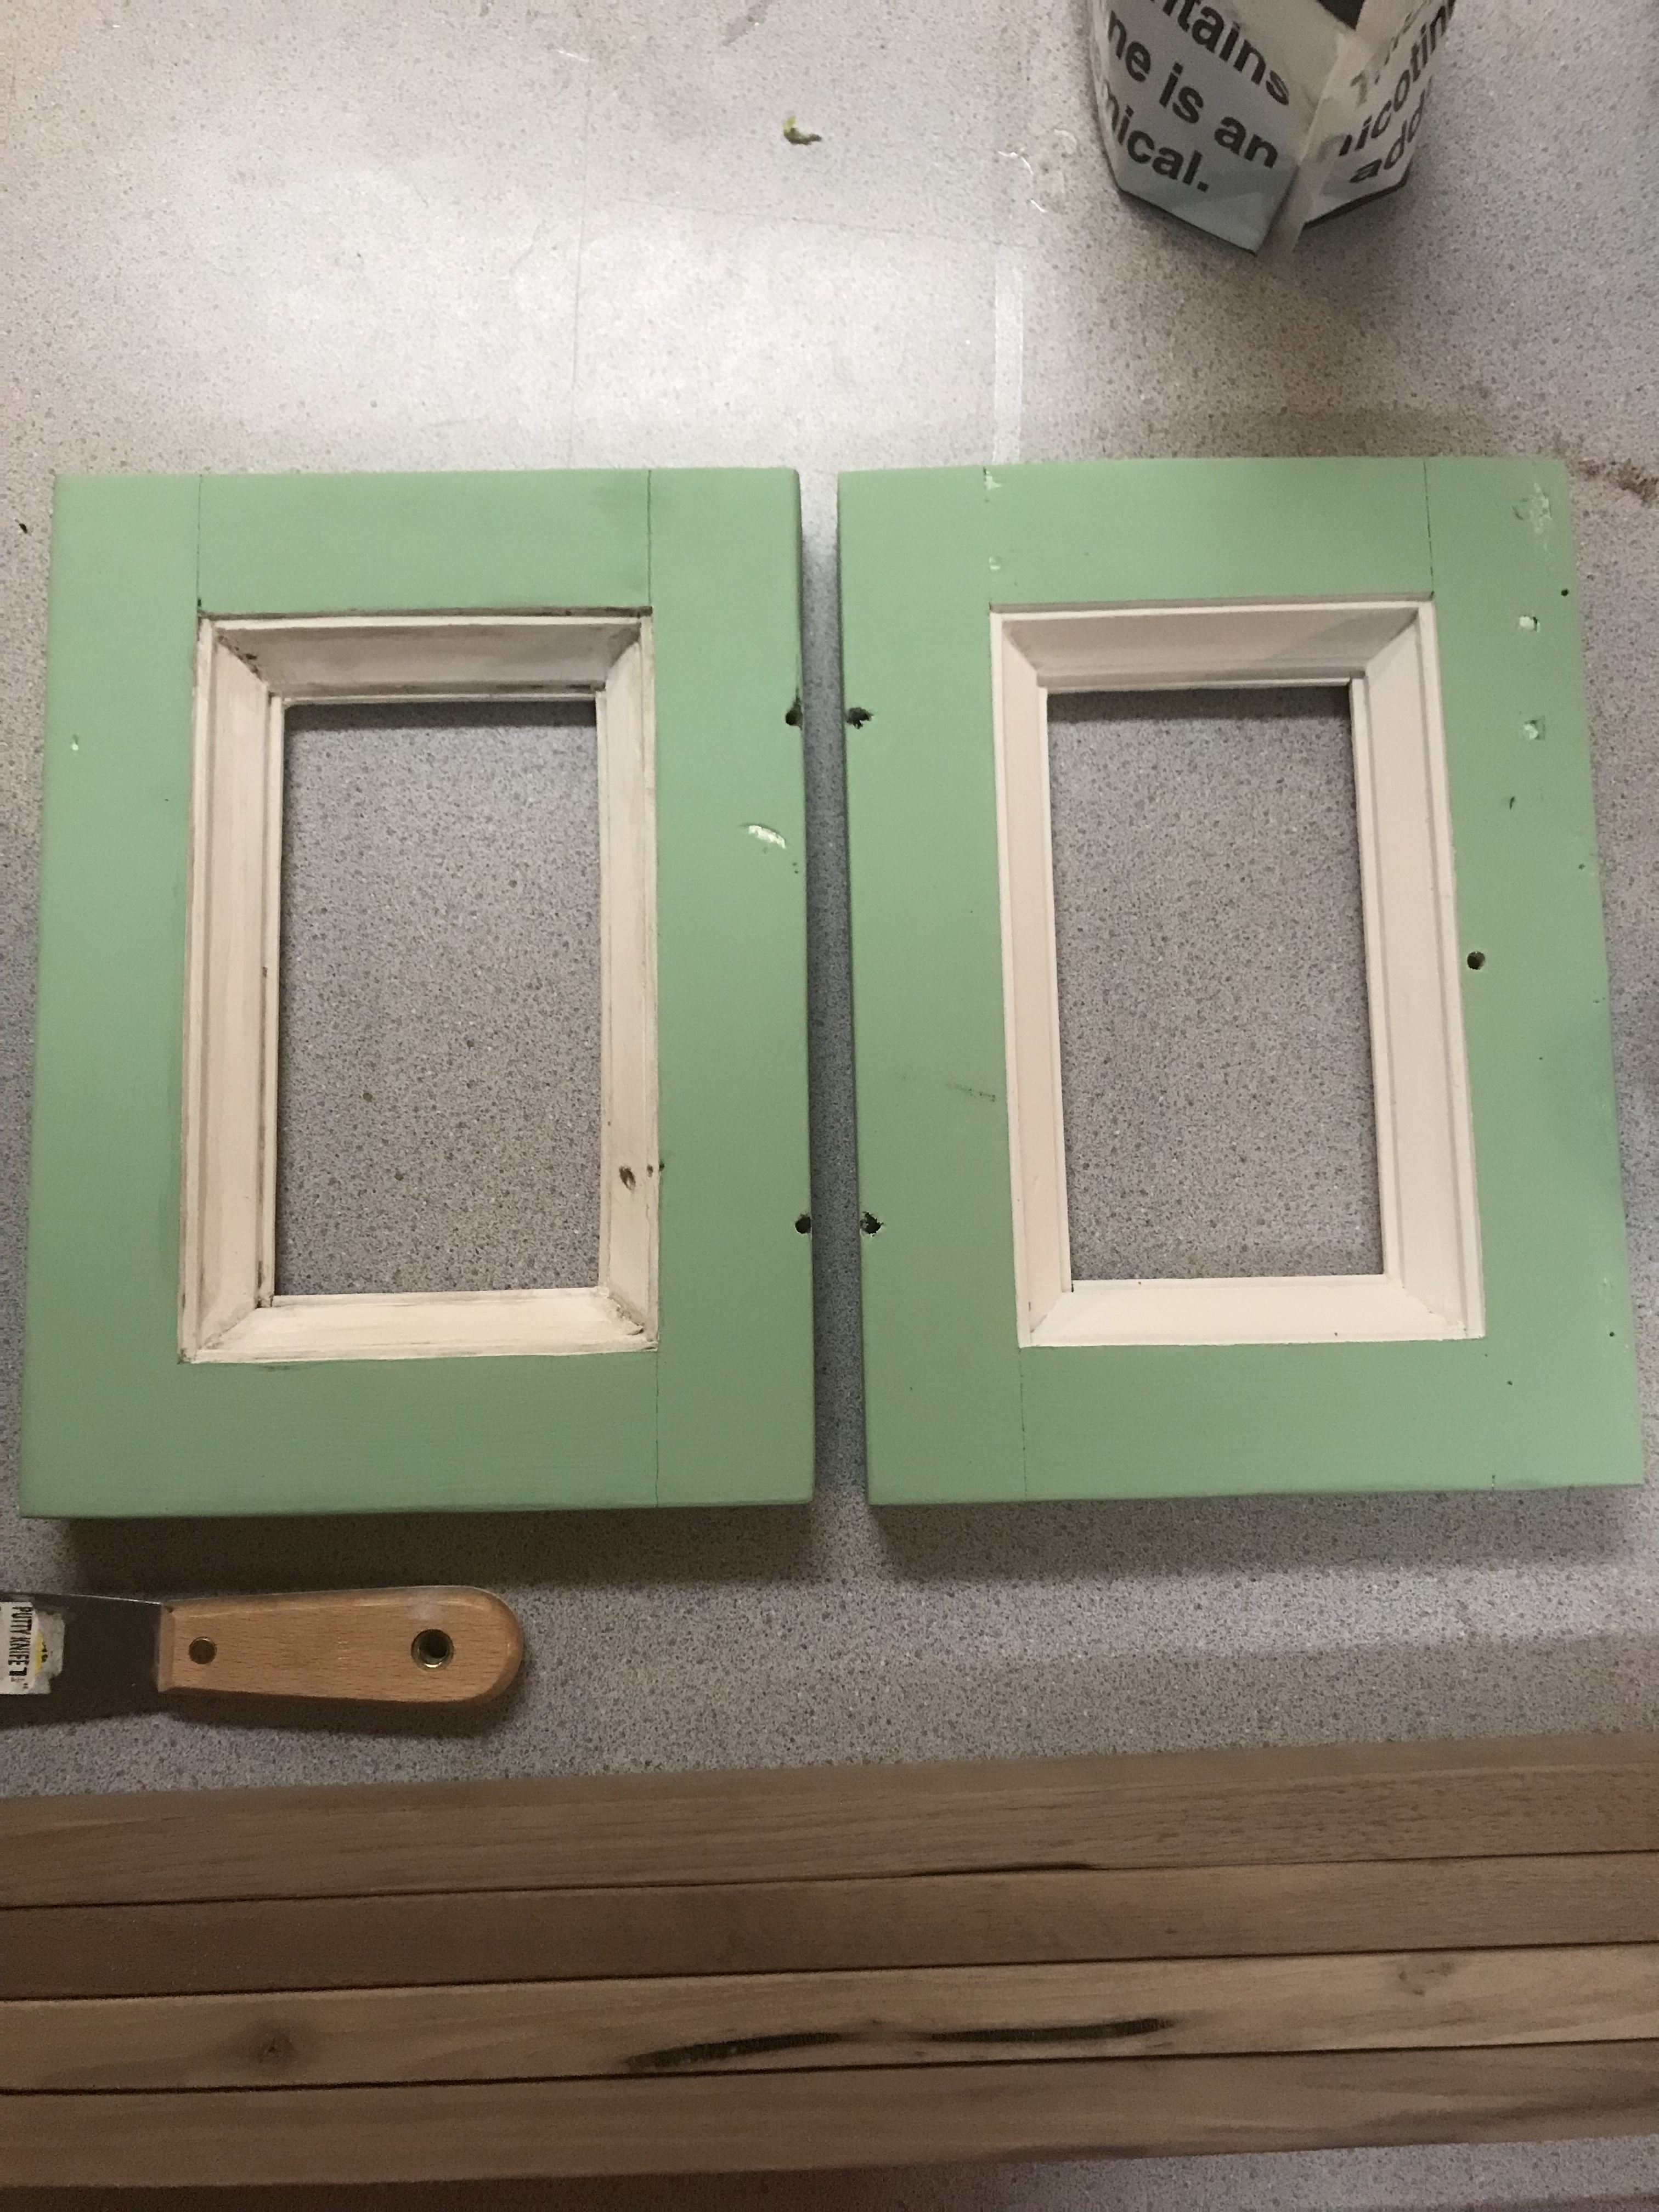 Two small cabinet doors with white inside molding and mint green panels with a drywall spatula in the foreground